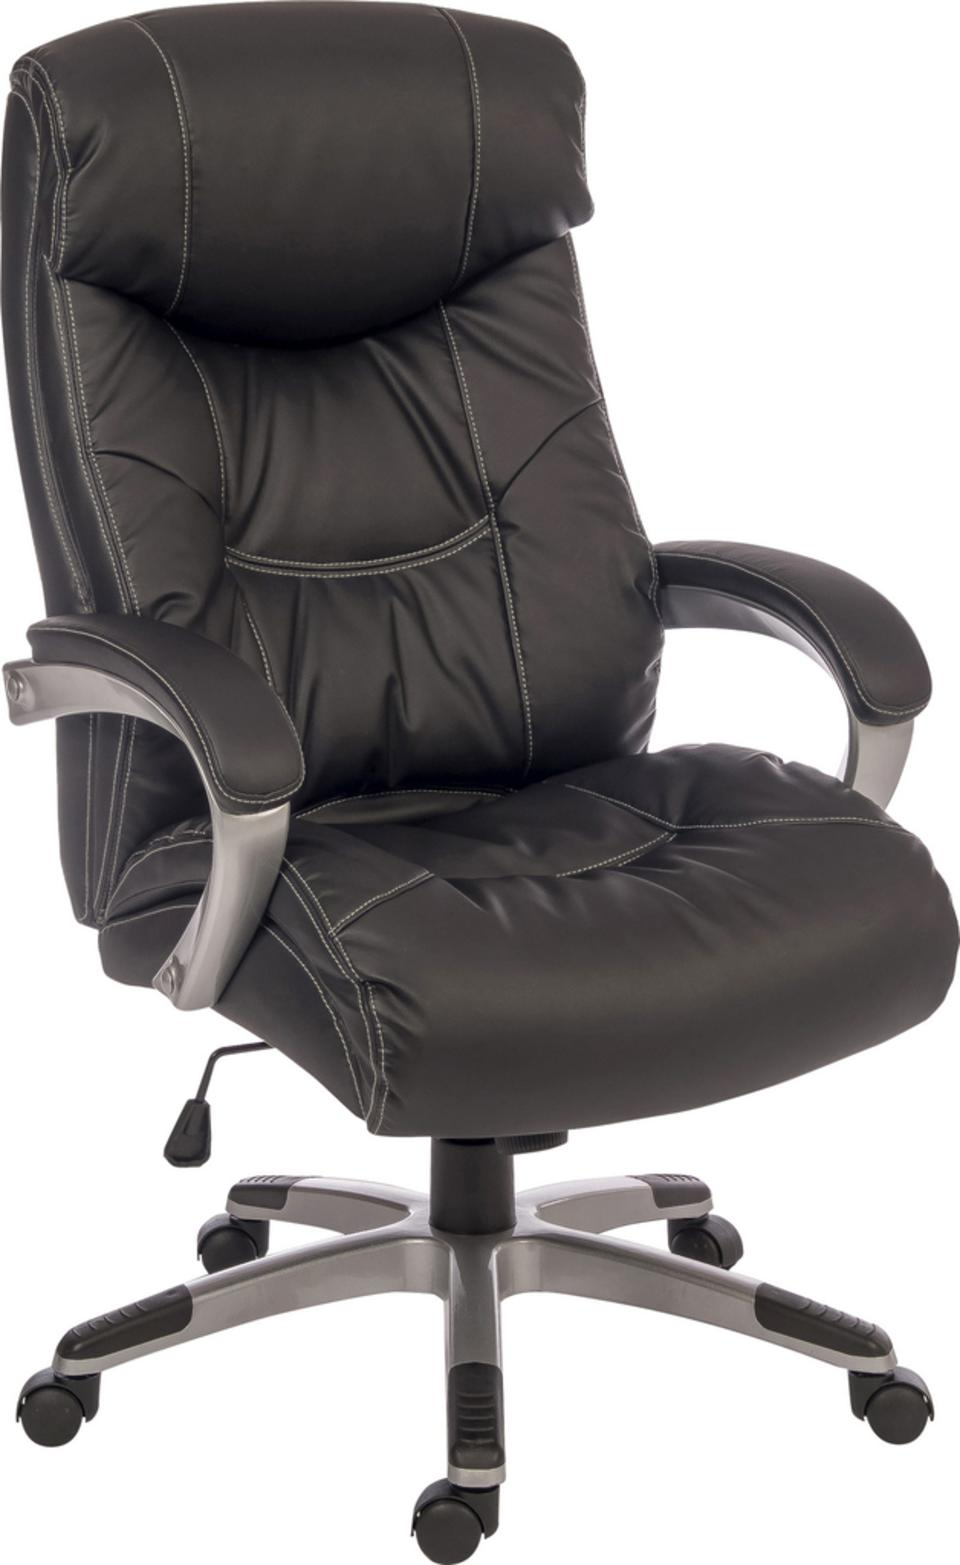 Siesta Leather Executive Chair